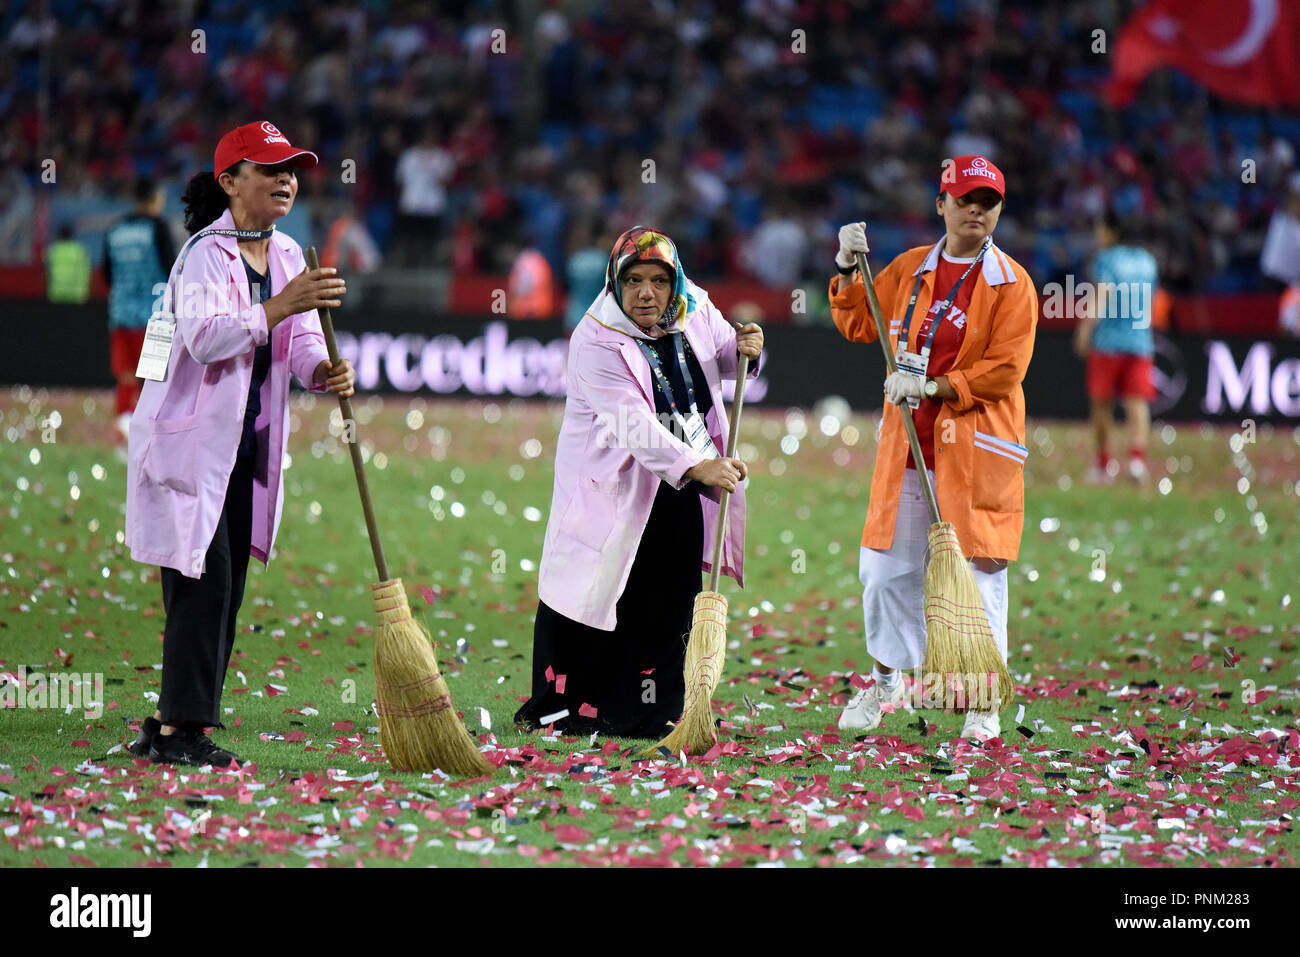 Trabzon, Turkey - September 7, 2018. Female workers cleaning up confetti from pitch during half-time break in UEFA Nations League match Turkey vs Russ - Stock Image